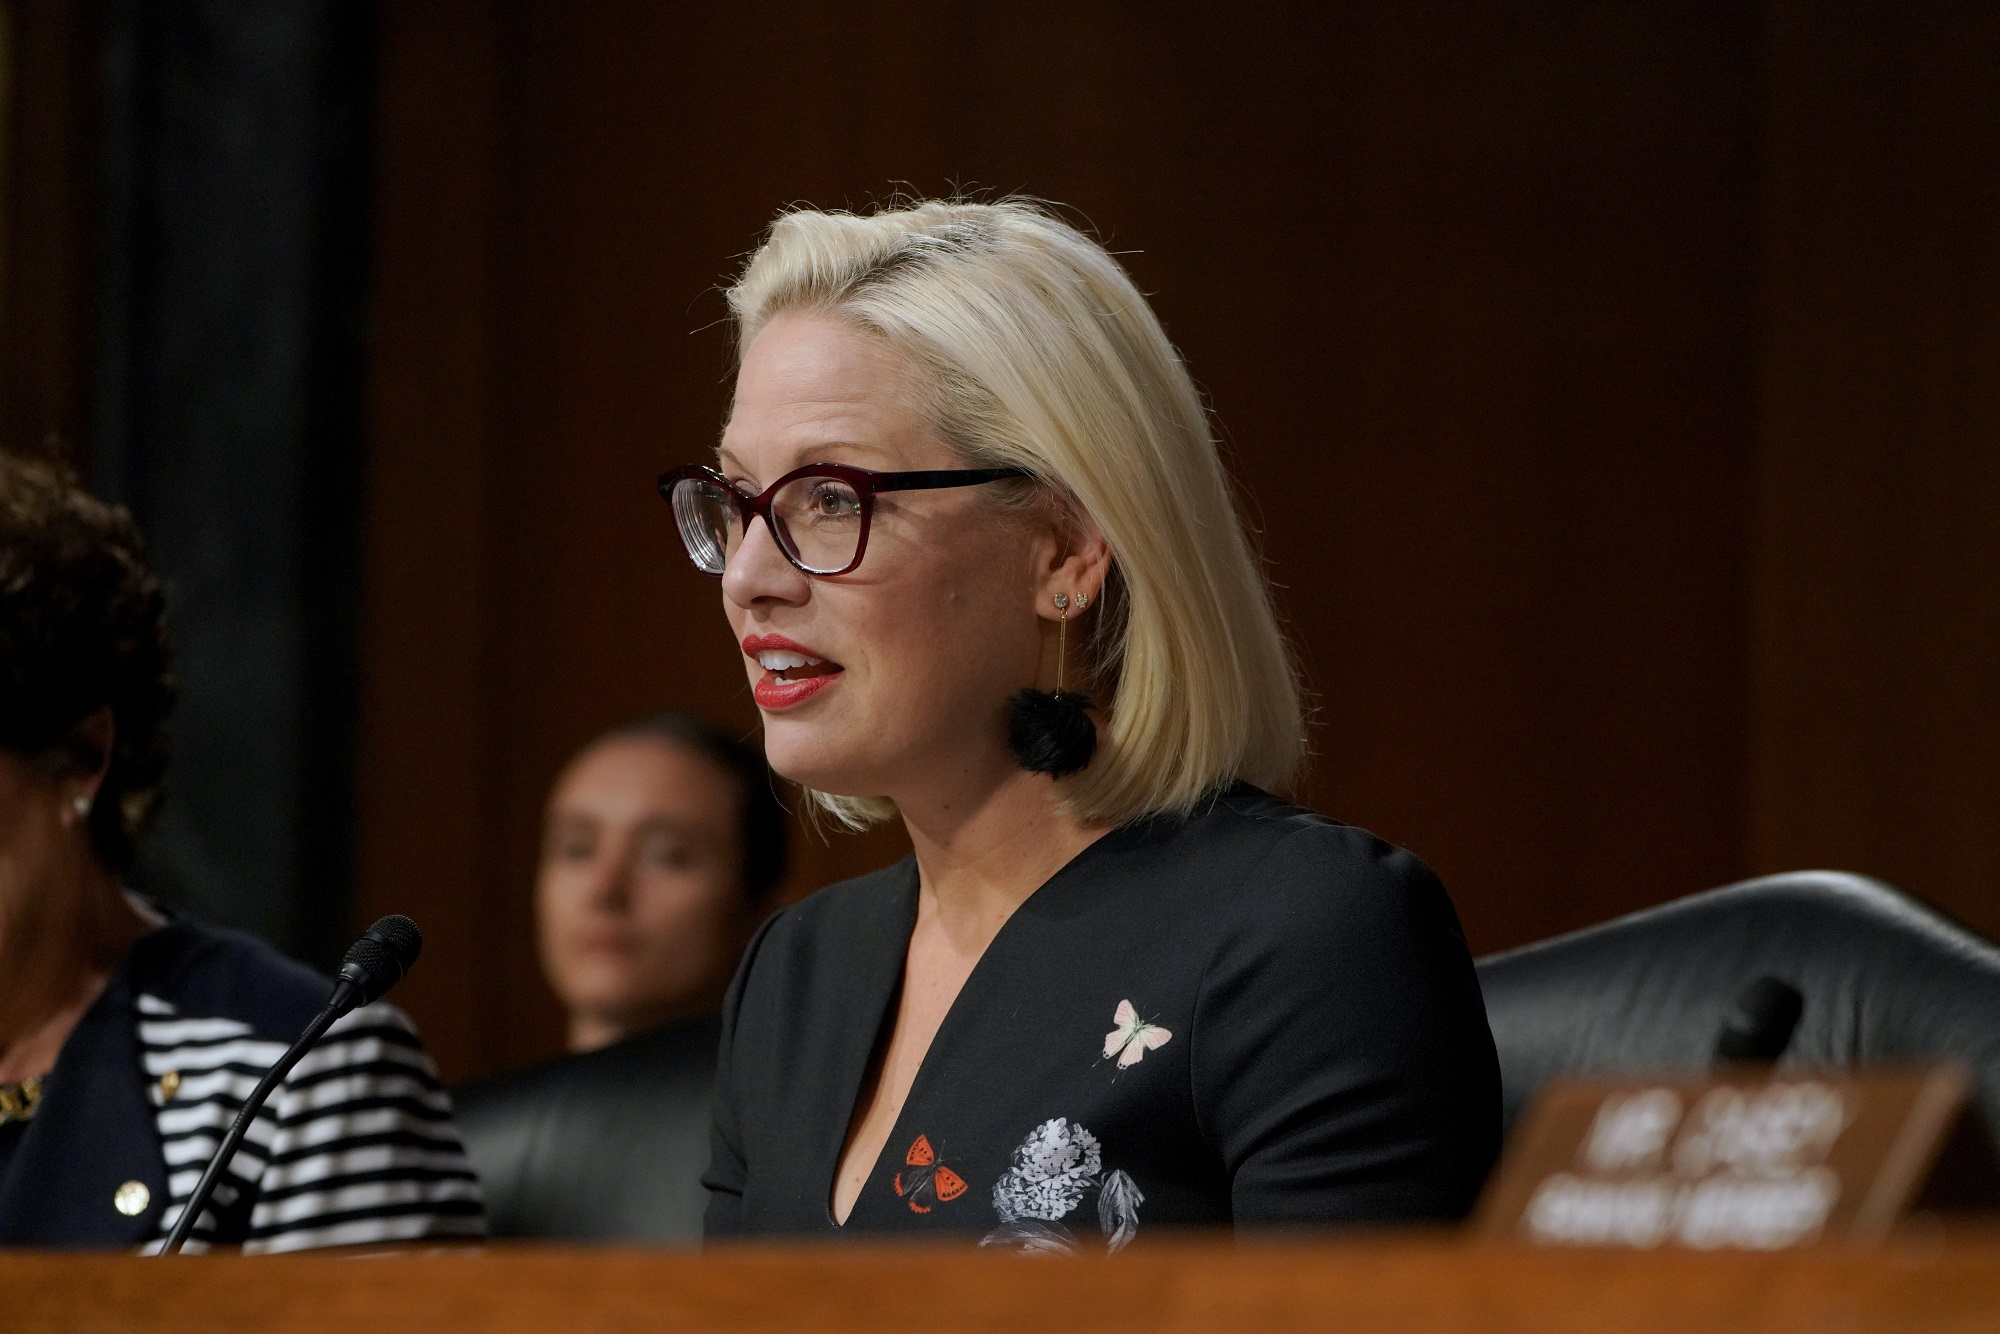 Sen. Kyrsten Sinema's Pro-Trump Votes Rile Arizona Democrats, Censure Vote Planned